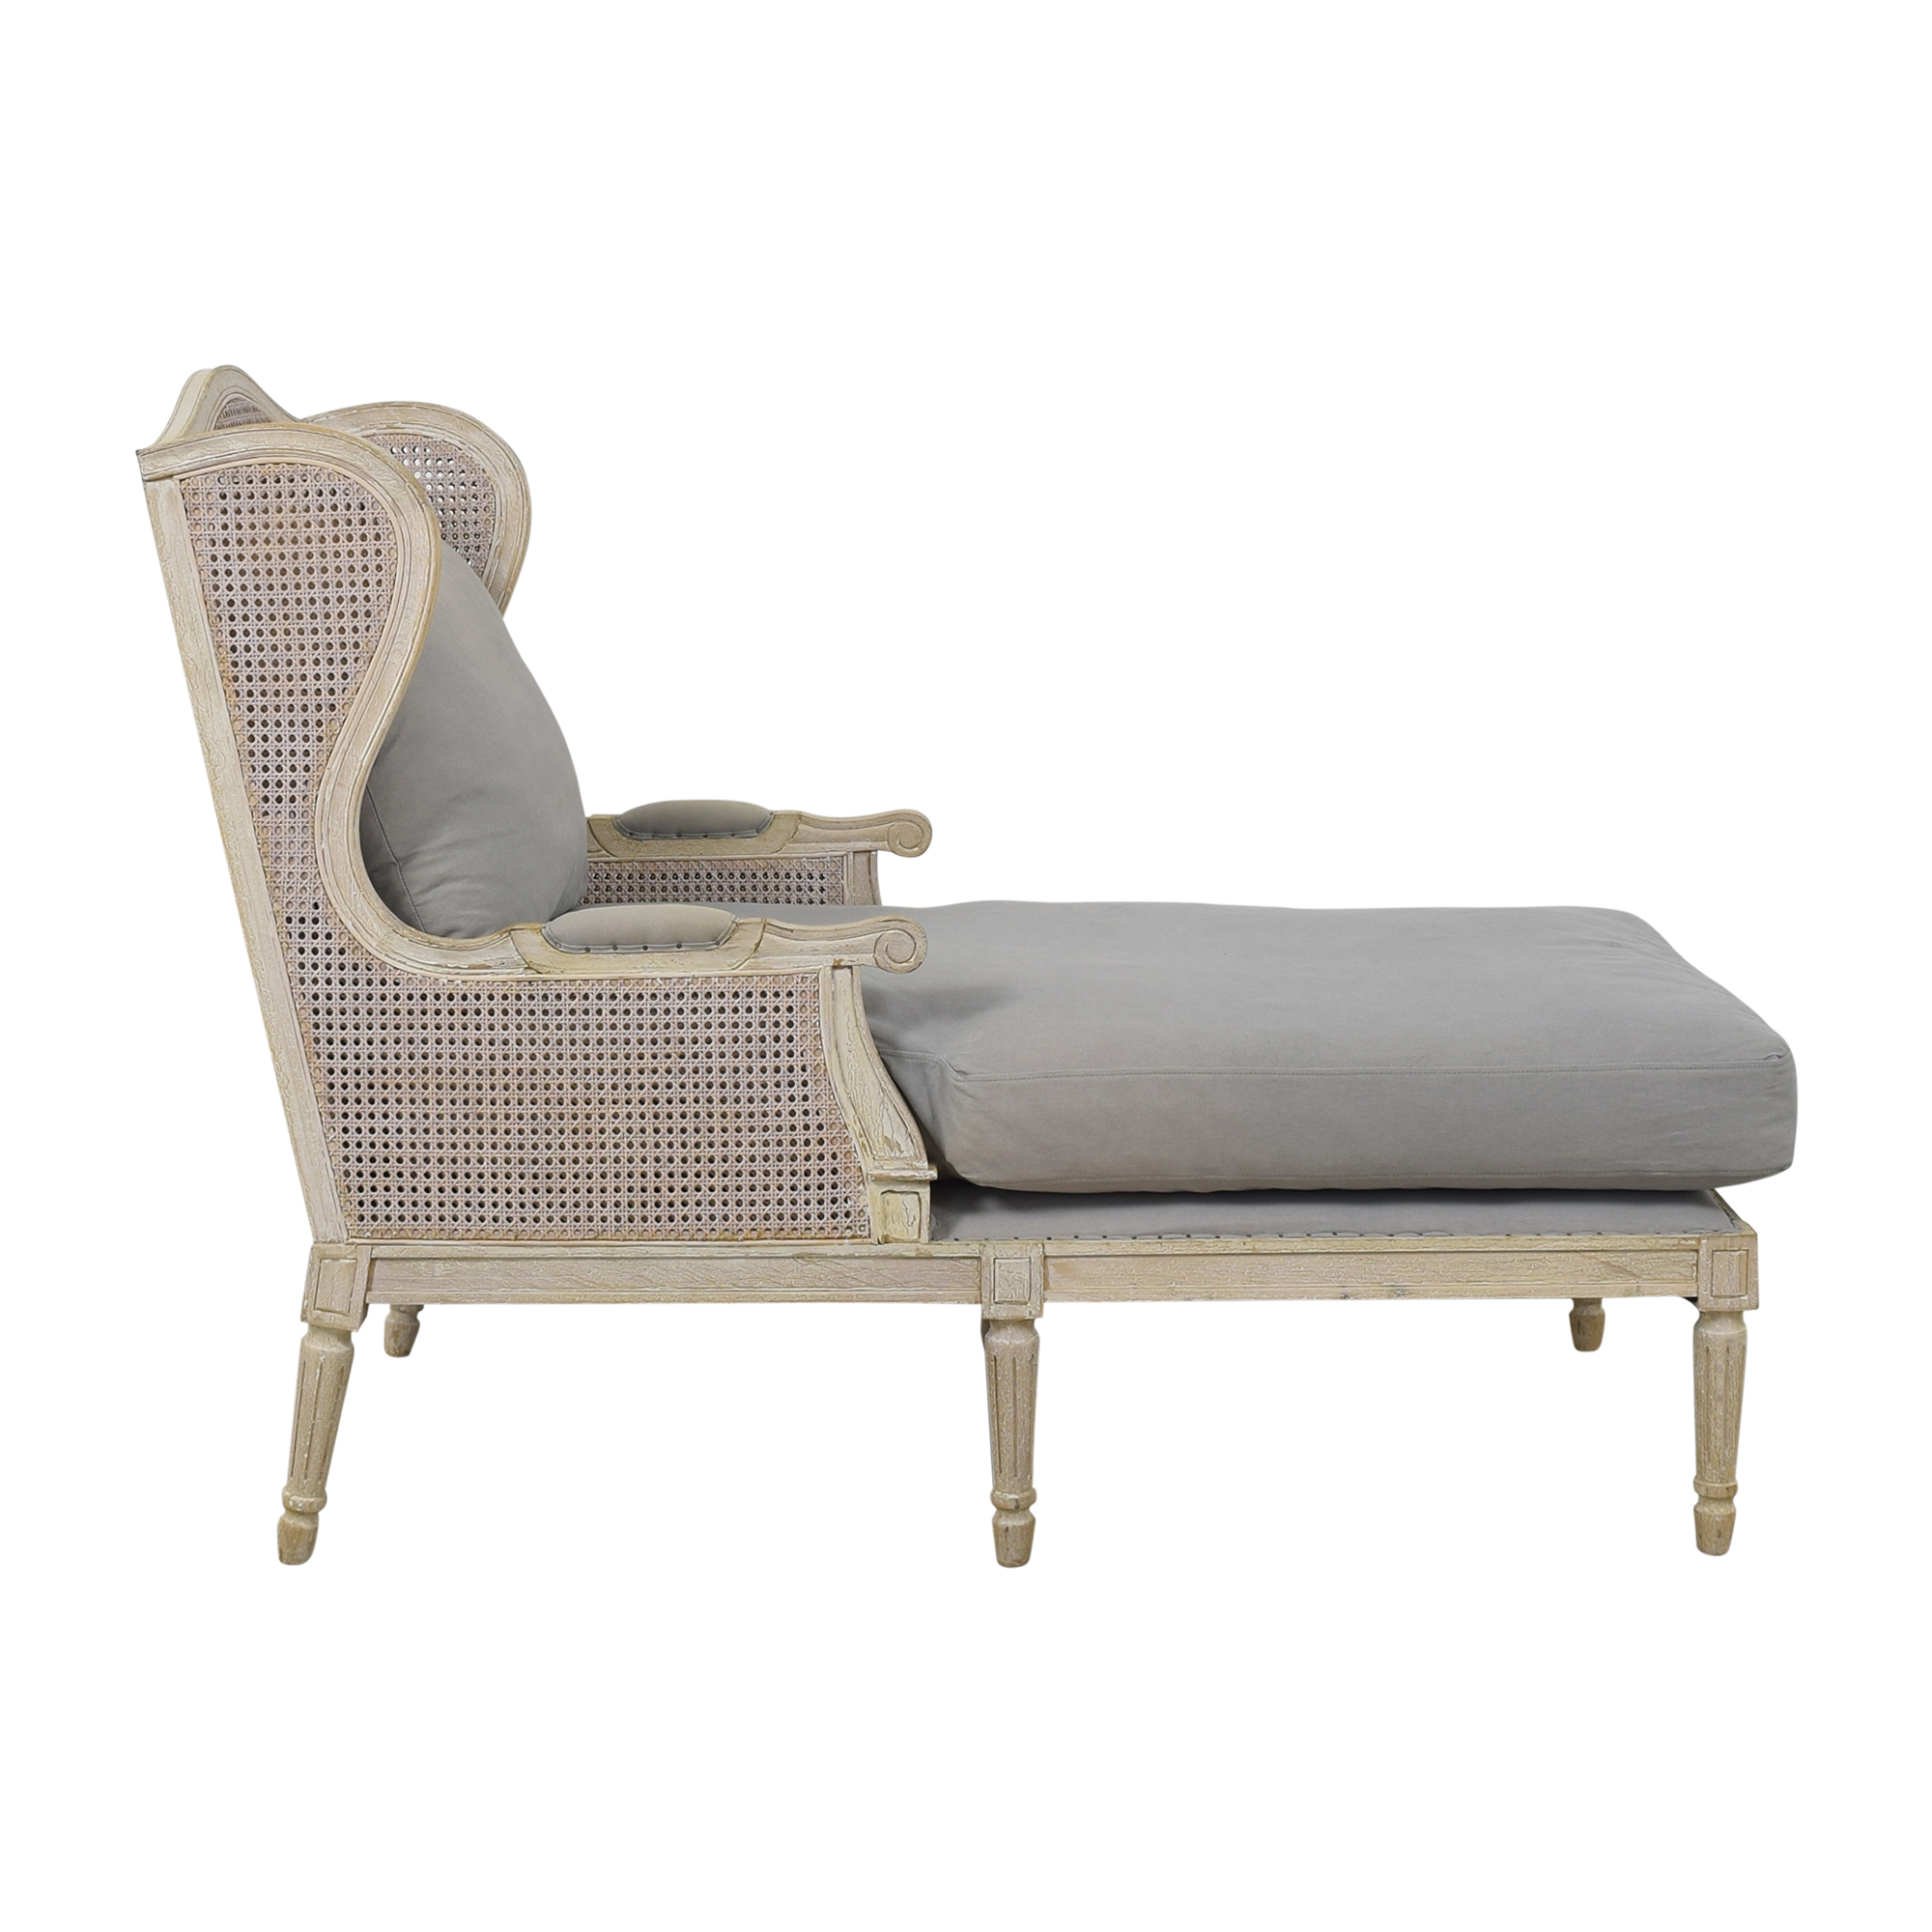 French Country Style Chaise Lounge Sofas